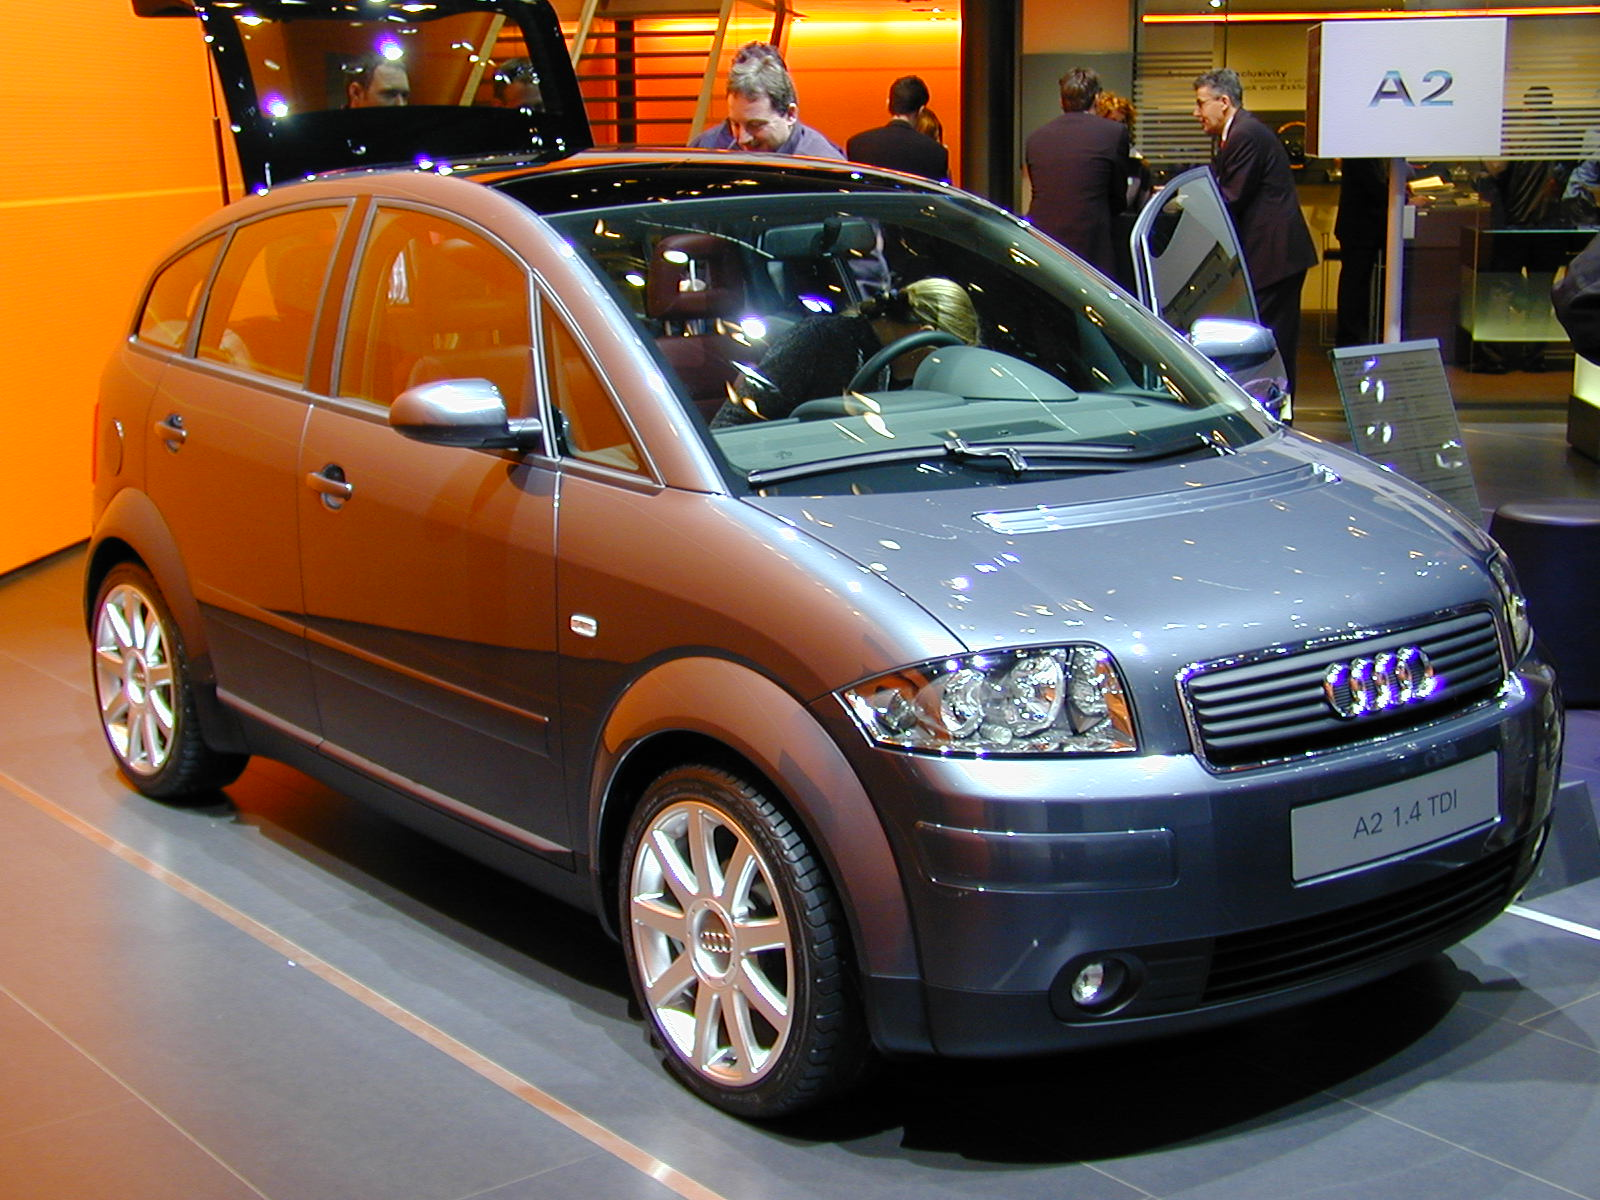 Auto Wallpapers Audi A2